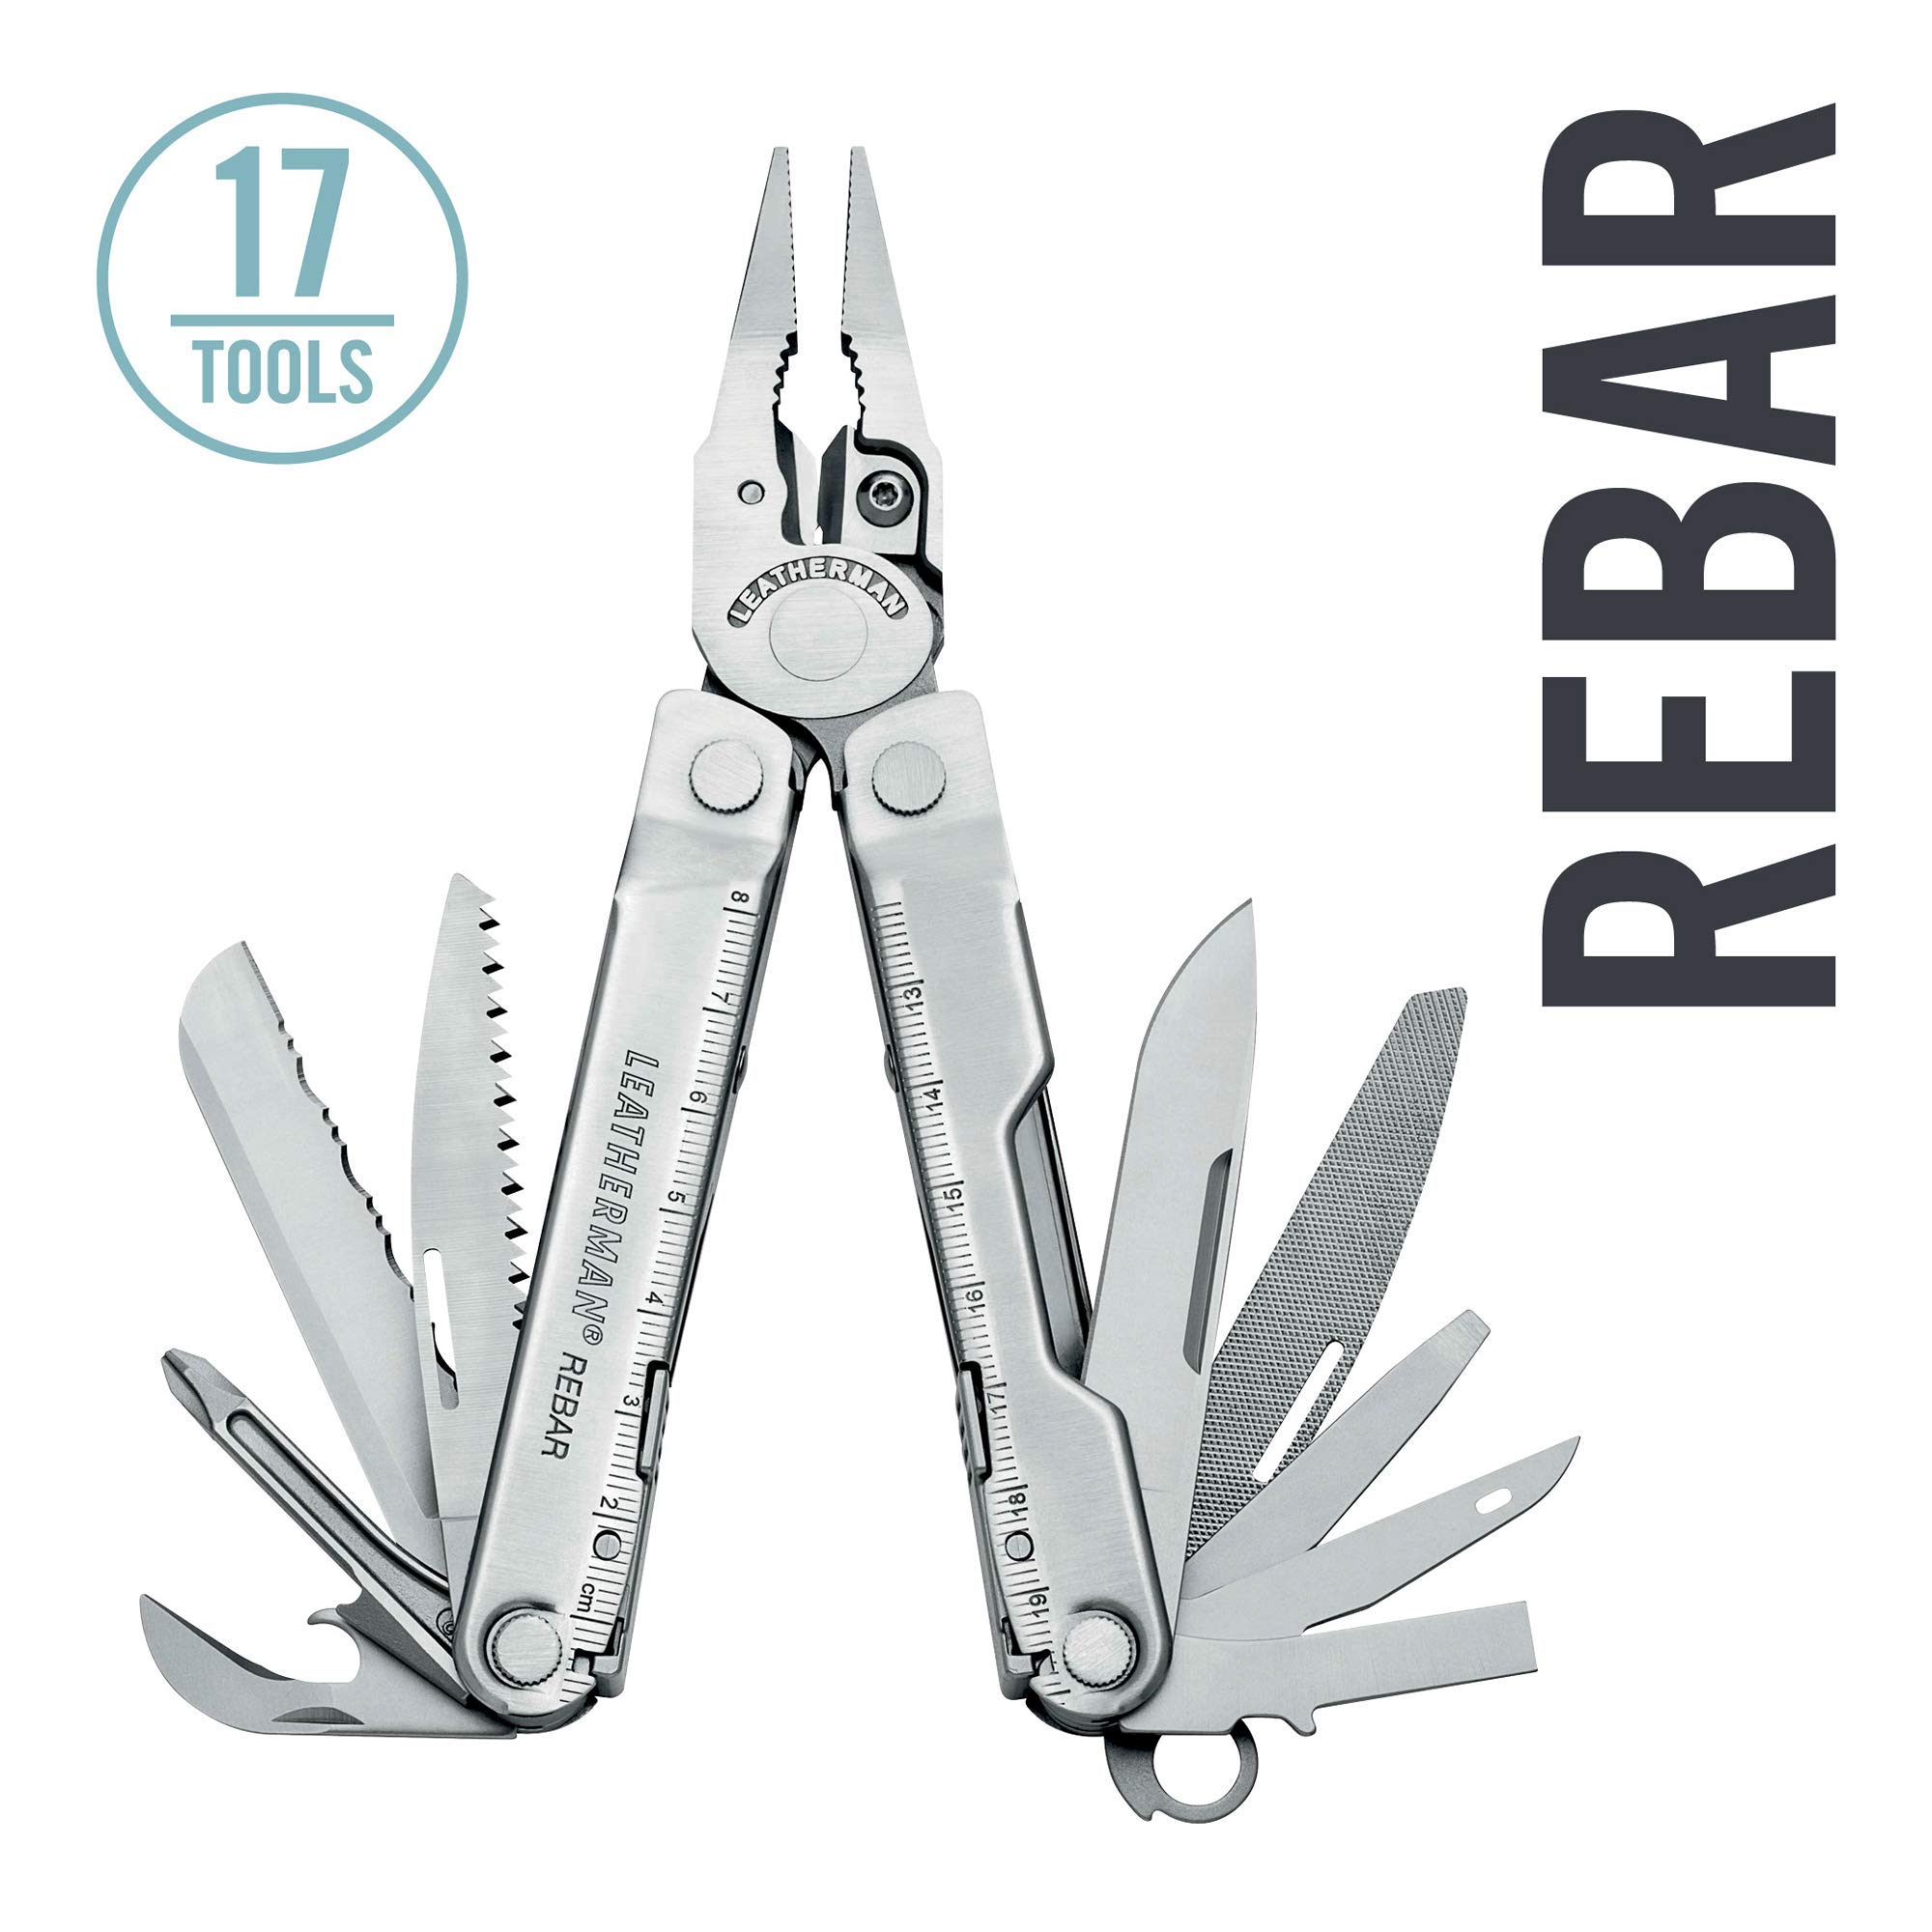 LEATHERMAN - Rebar Multitool with Premium Replaceable Wire Cutters and Saw, Stainless Steel with Nylon